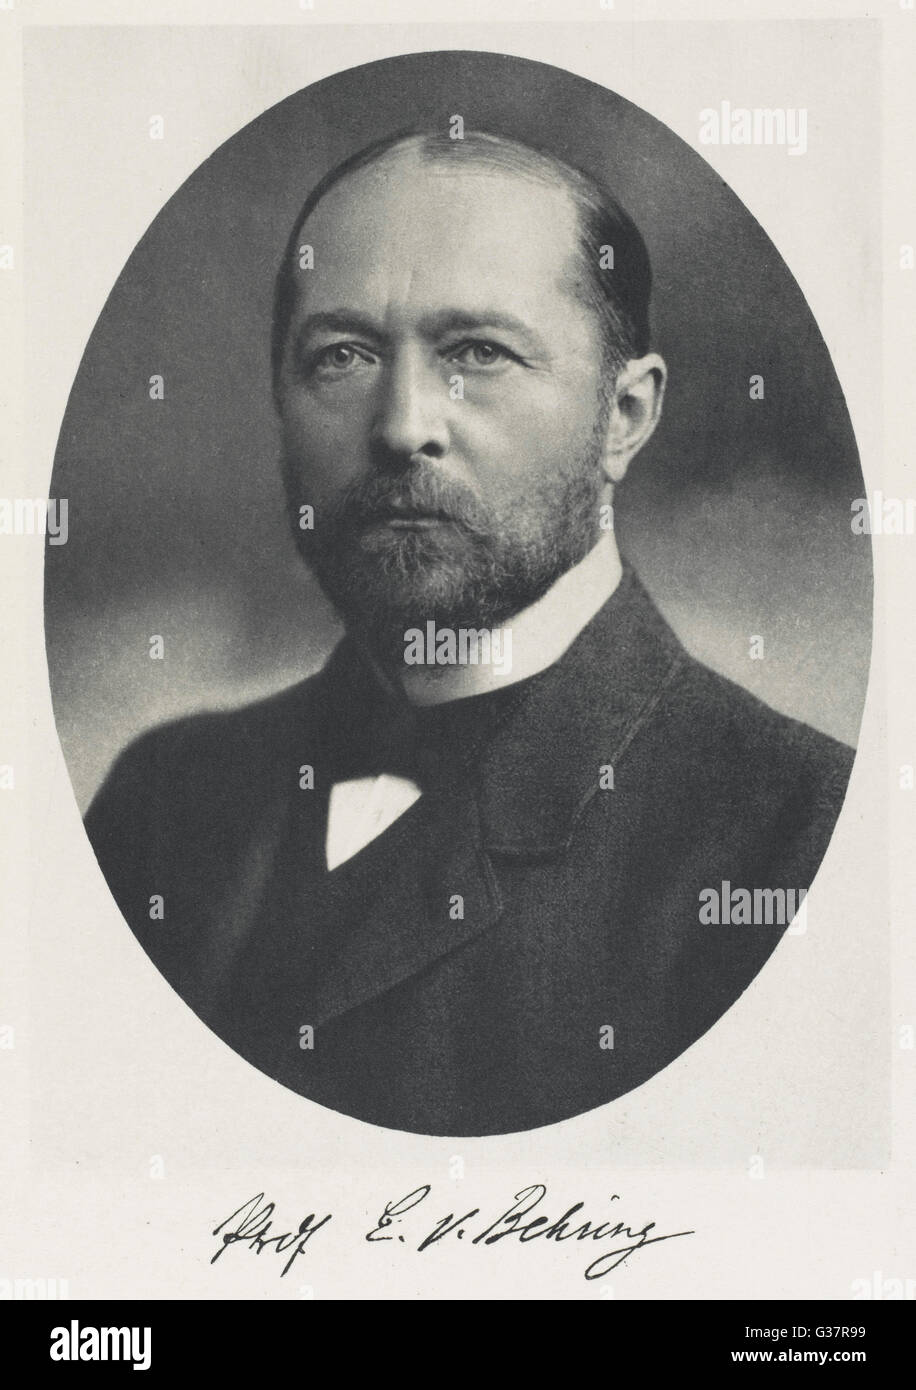 EMIL ADOLF VON BEHRING  German bacteriologist who won Nobel prize for  physiology or medicine in 1901      Date: - Stock Image